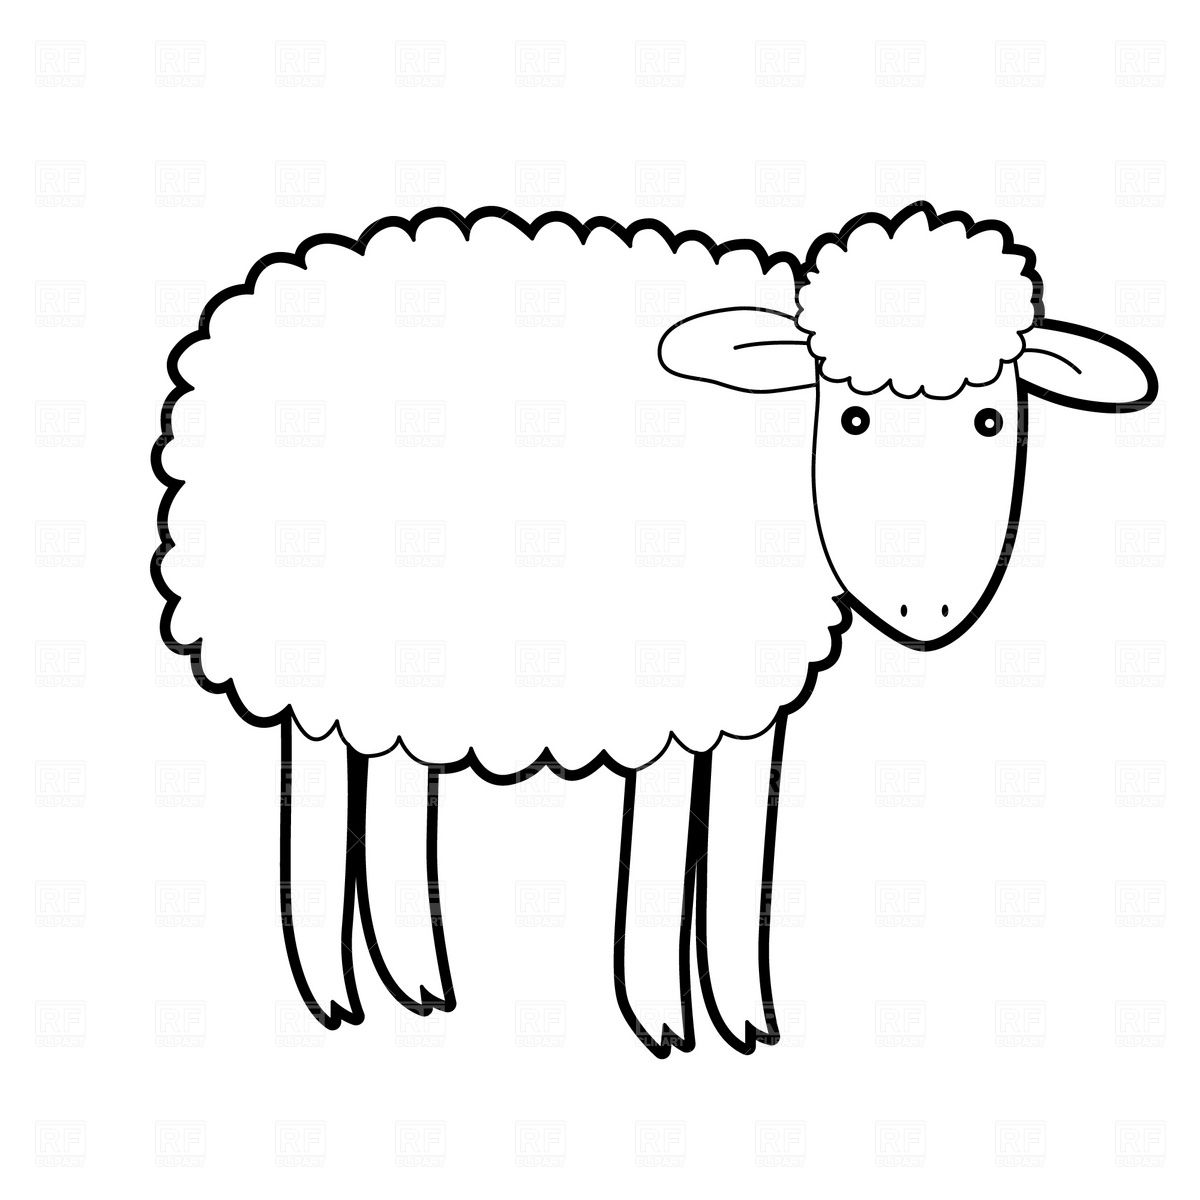 Ewe cartoon clipart black and white picture free library Lamb Clipart Black And | Tattoos...... | Cartoon lamb, Free clipart ... picture free library